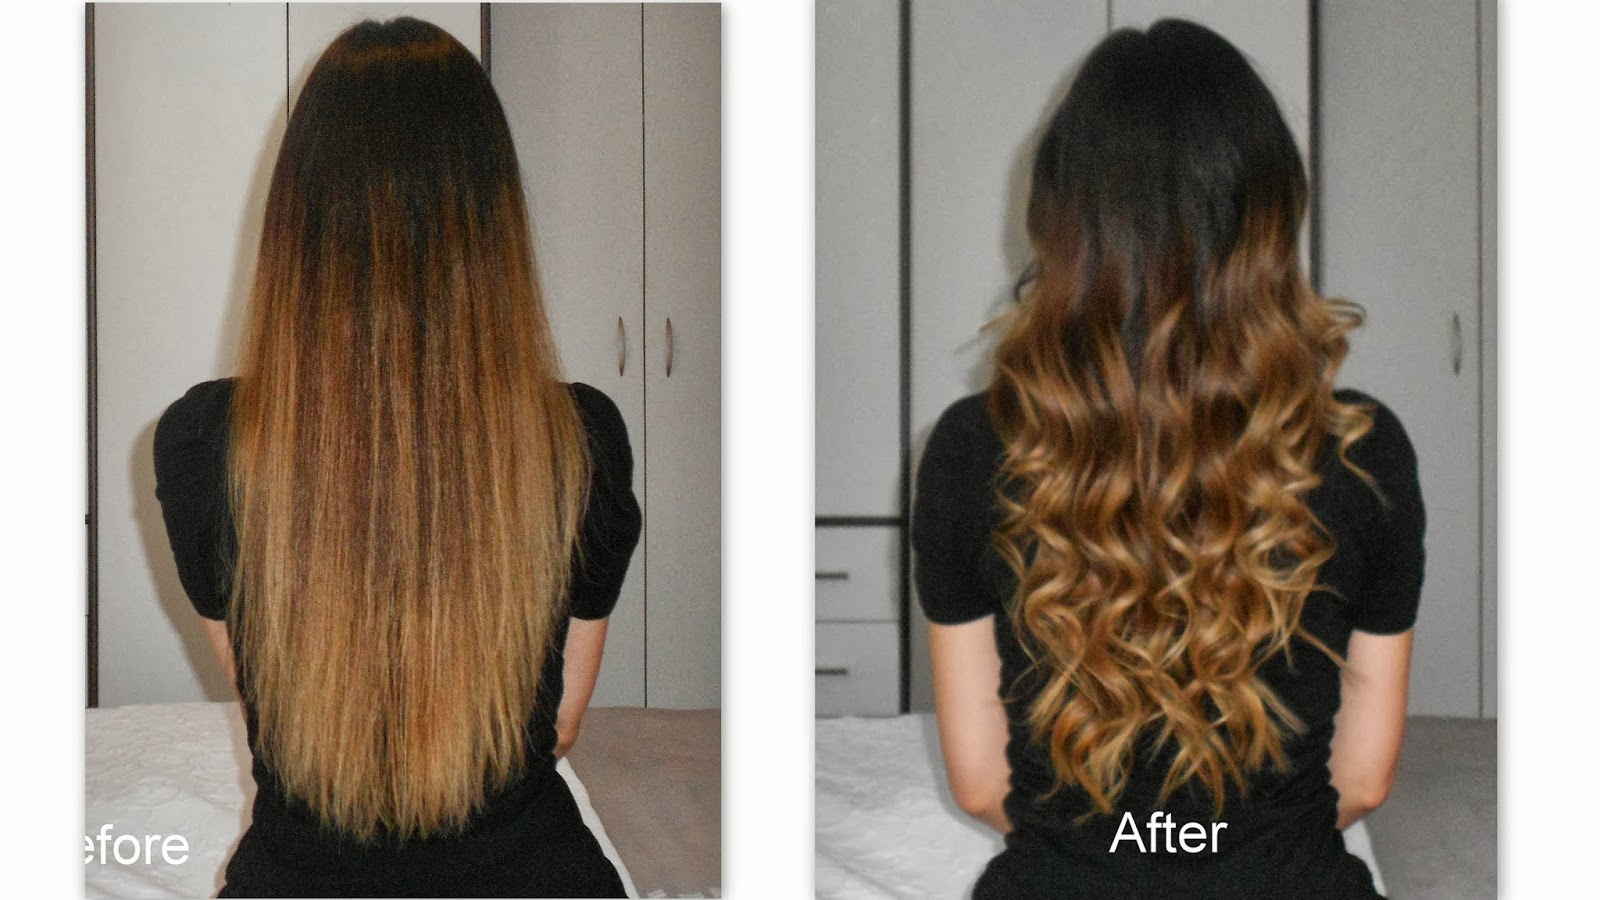 https://www.lilyhair.com/collections/pre-bonded-hair-extensions